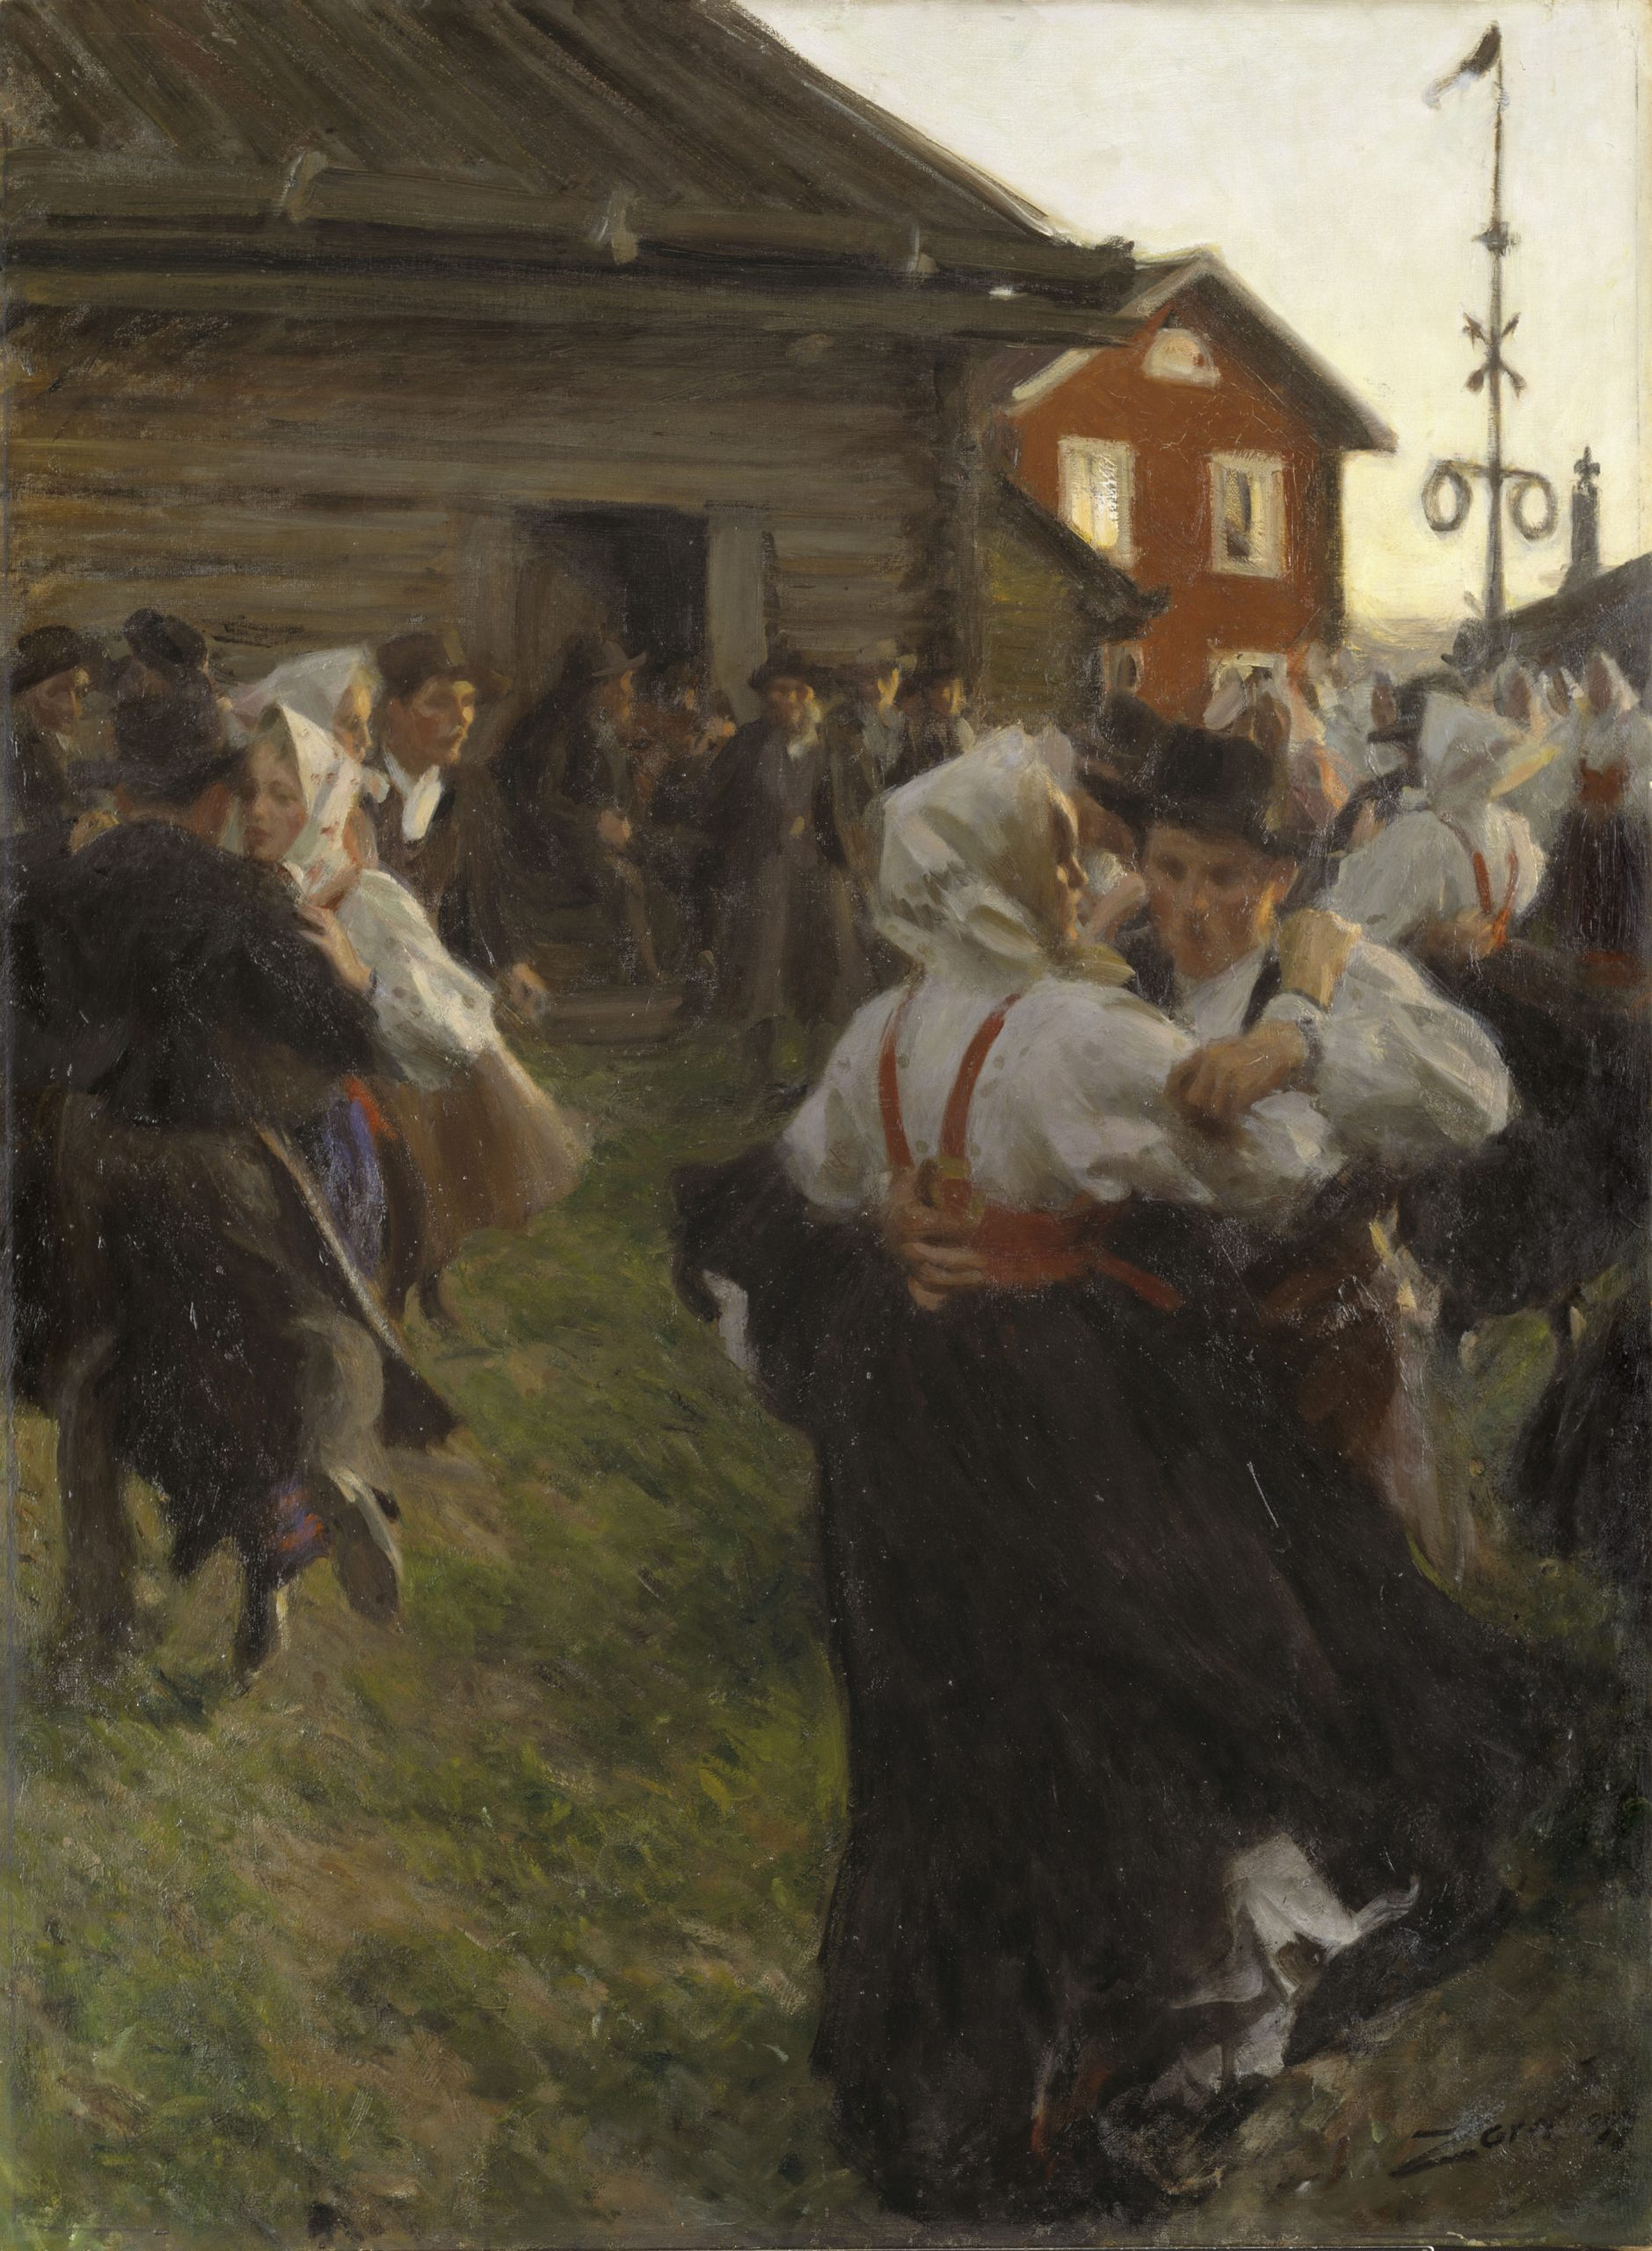 Anders Zorn's Midsummer Dance is a perfect example of how a person can be recognized in a crowd, even without depicting the details of their face.